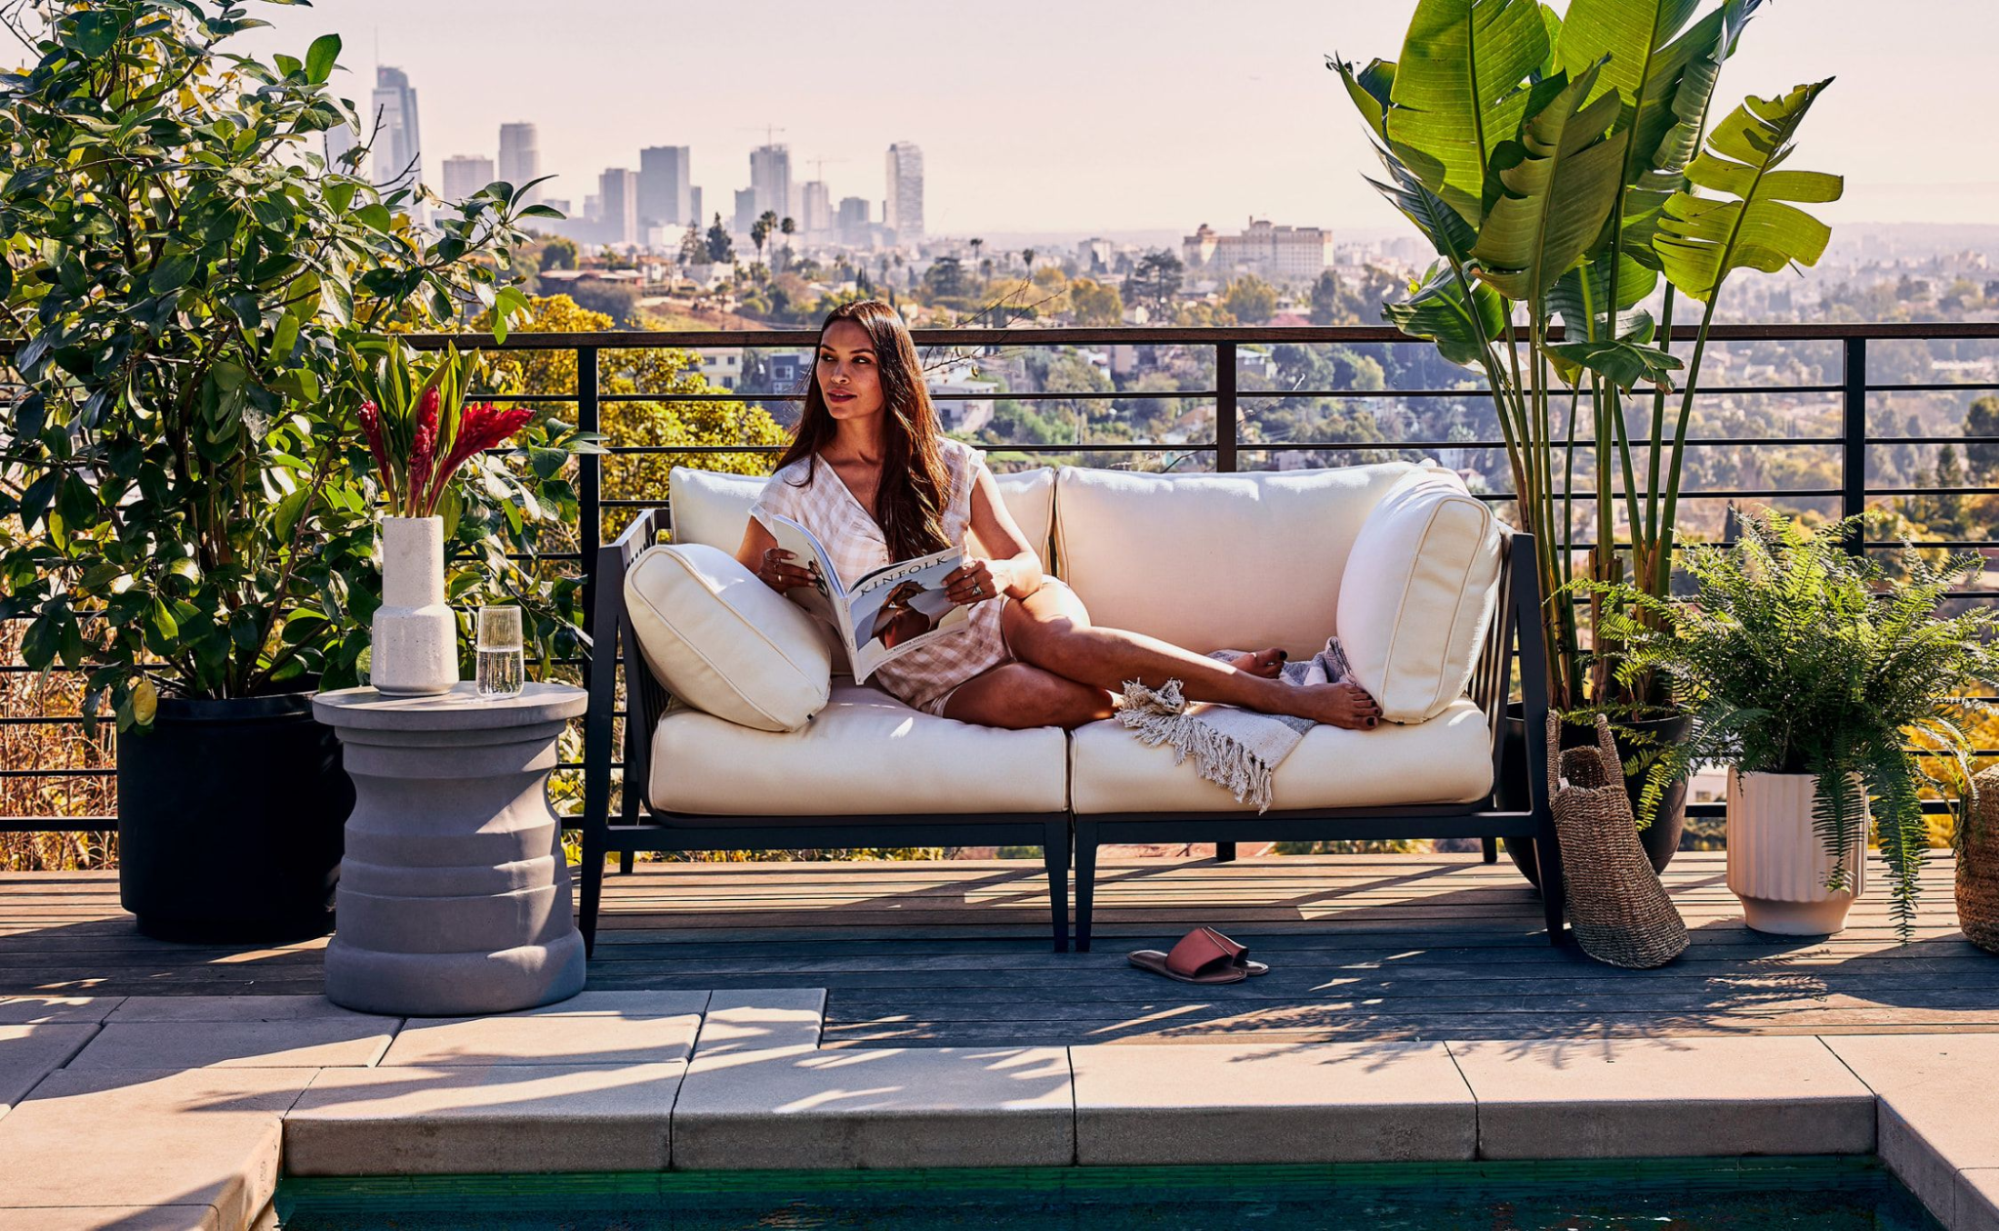 Woman sitting on a loveseat on a rooftop patio near a pool